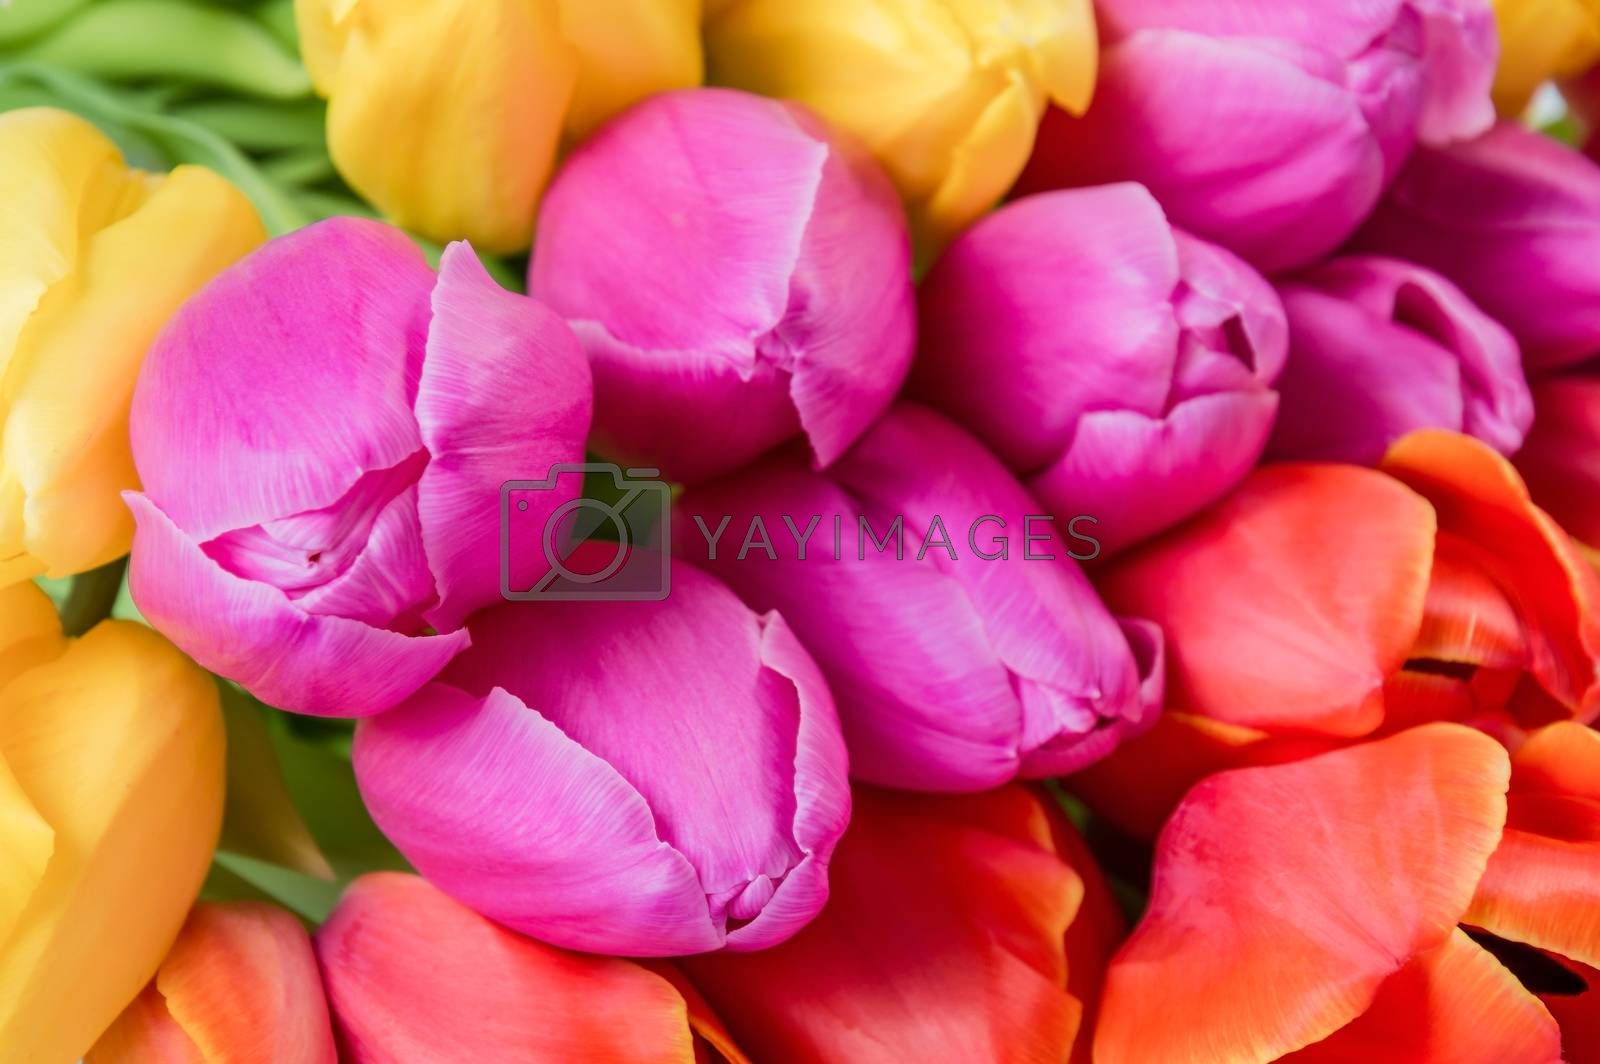 Many tulip flowers, selective focus